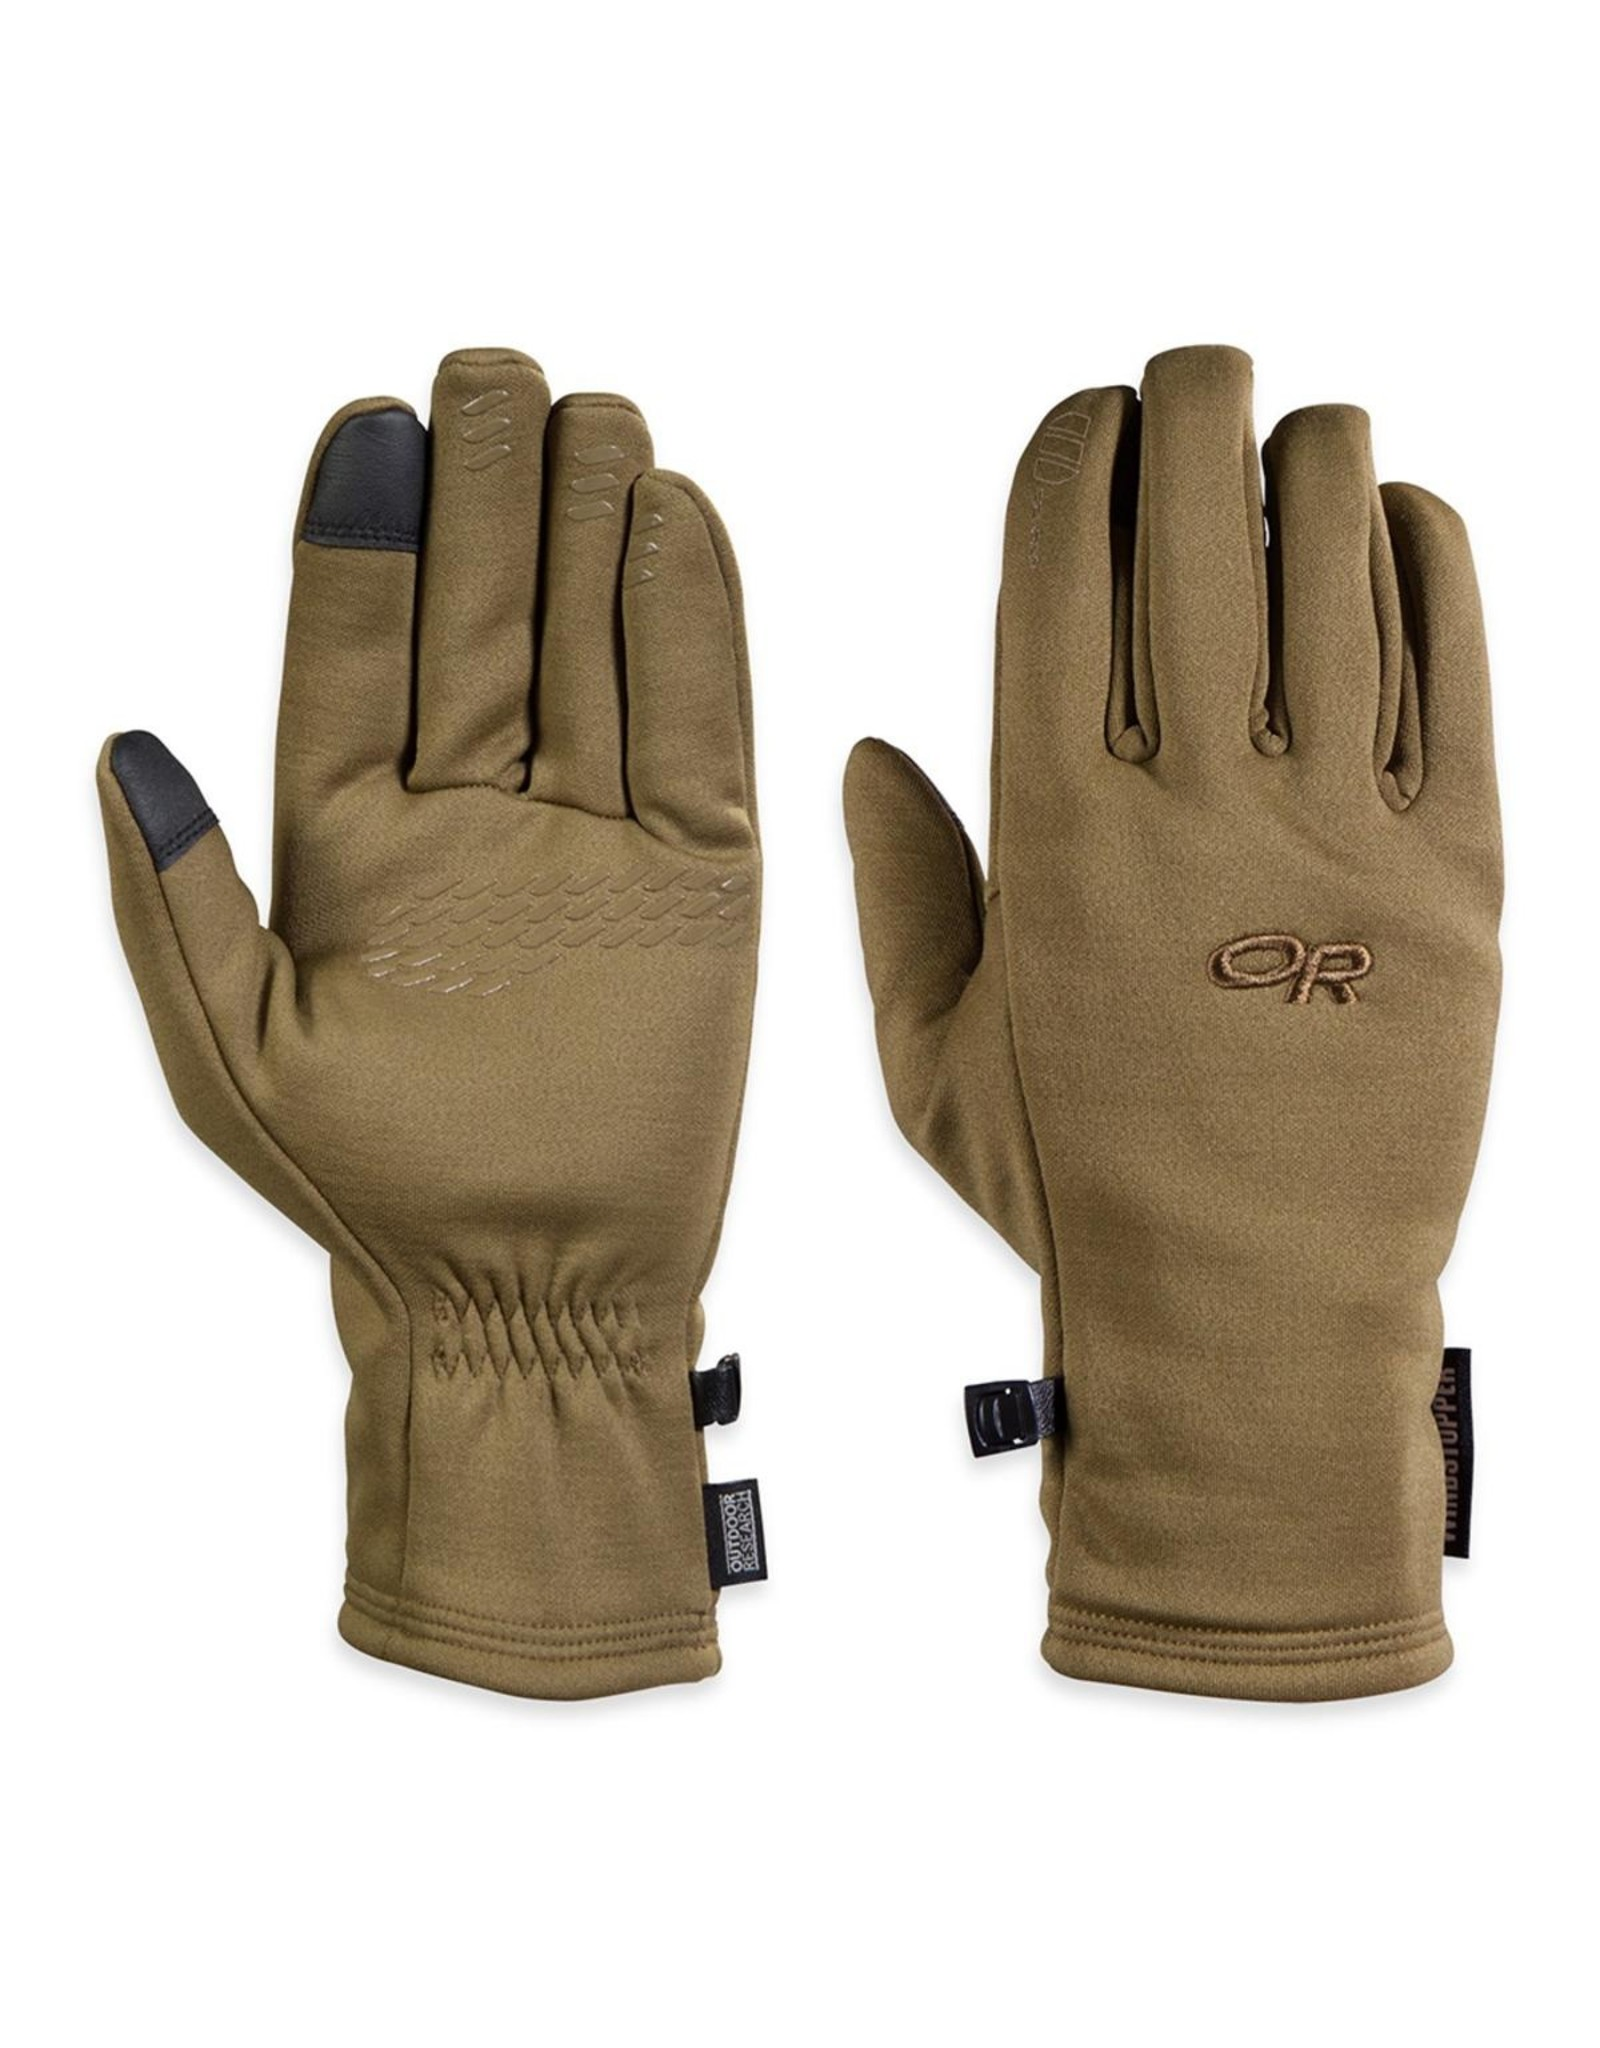 OUTDOOR RESEARCH OR BACKSTOP SENSOR GLOVES - COYOTE